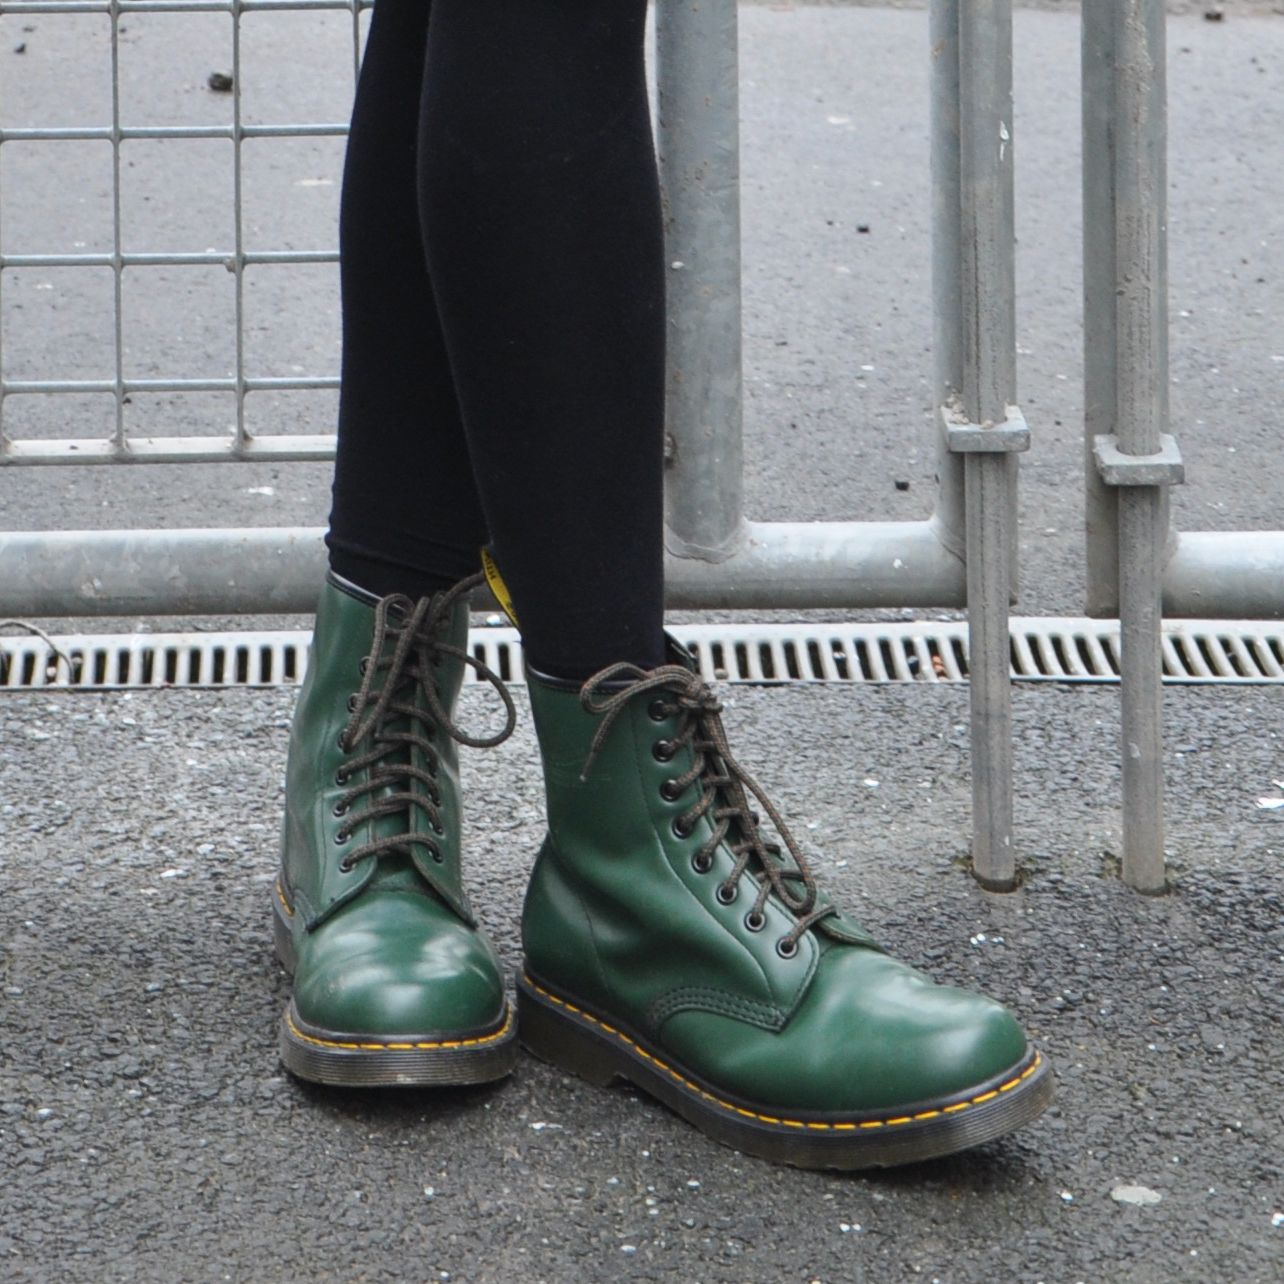 Classic Dr. Martens 1460 boot in green leather. | faves tres ...